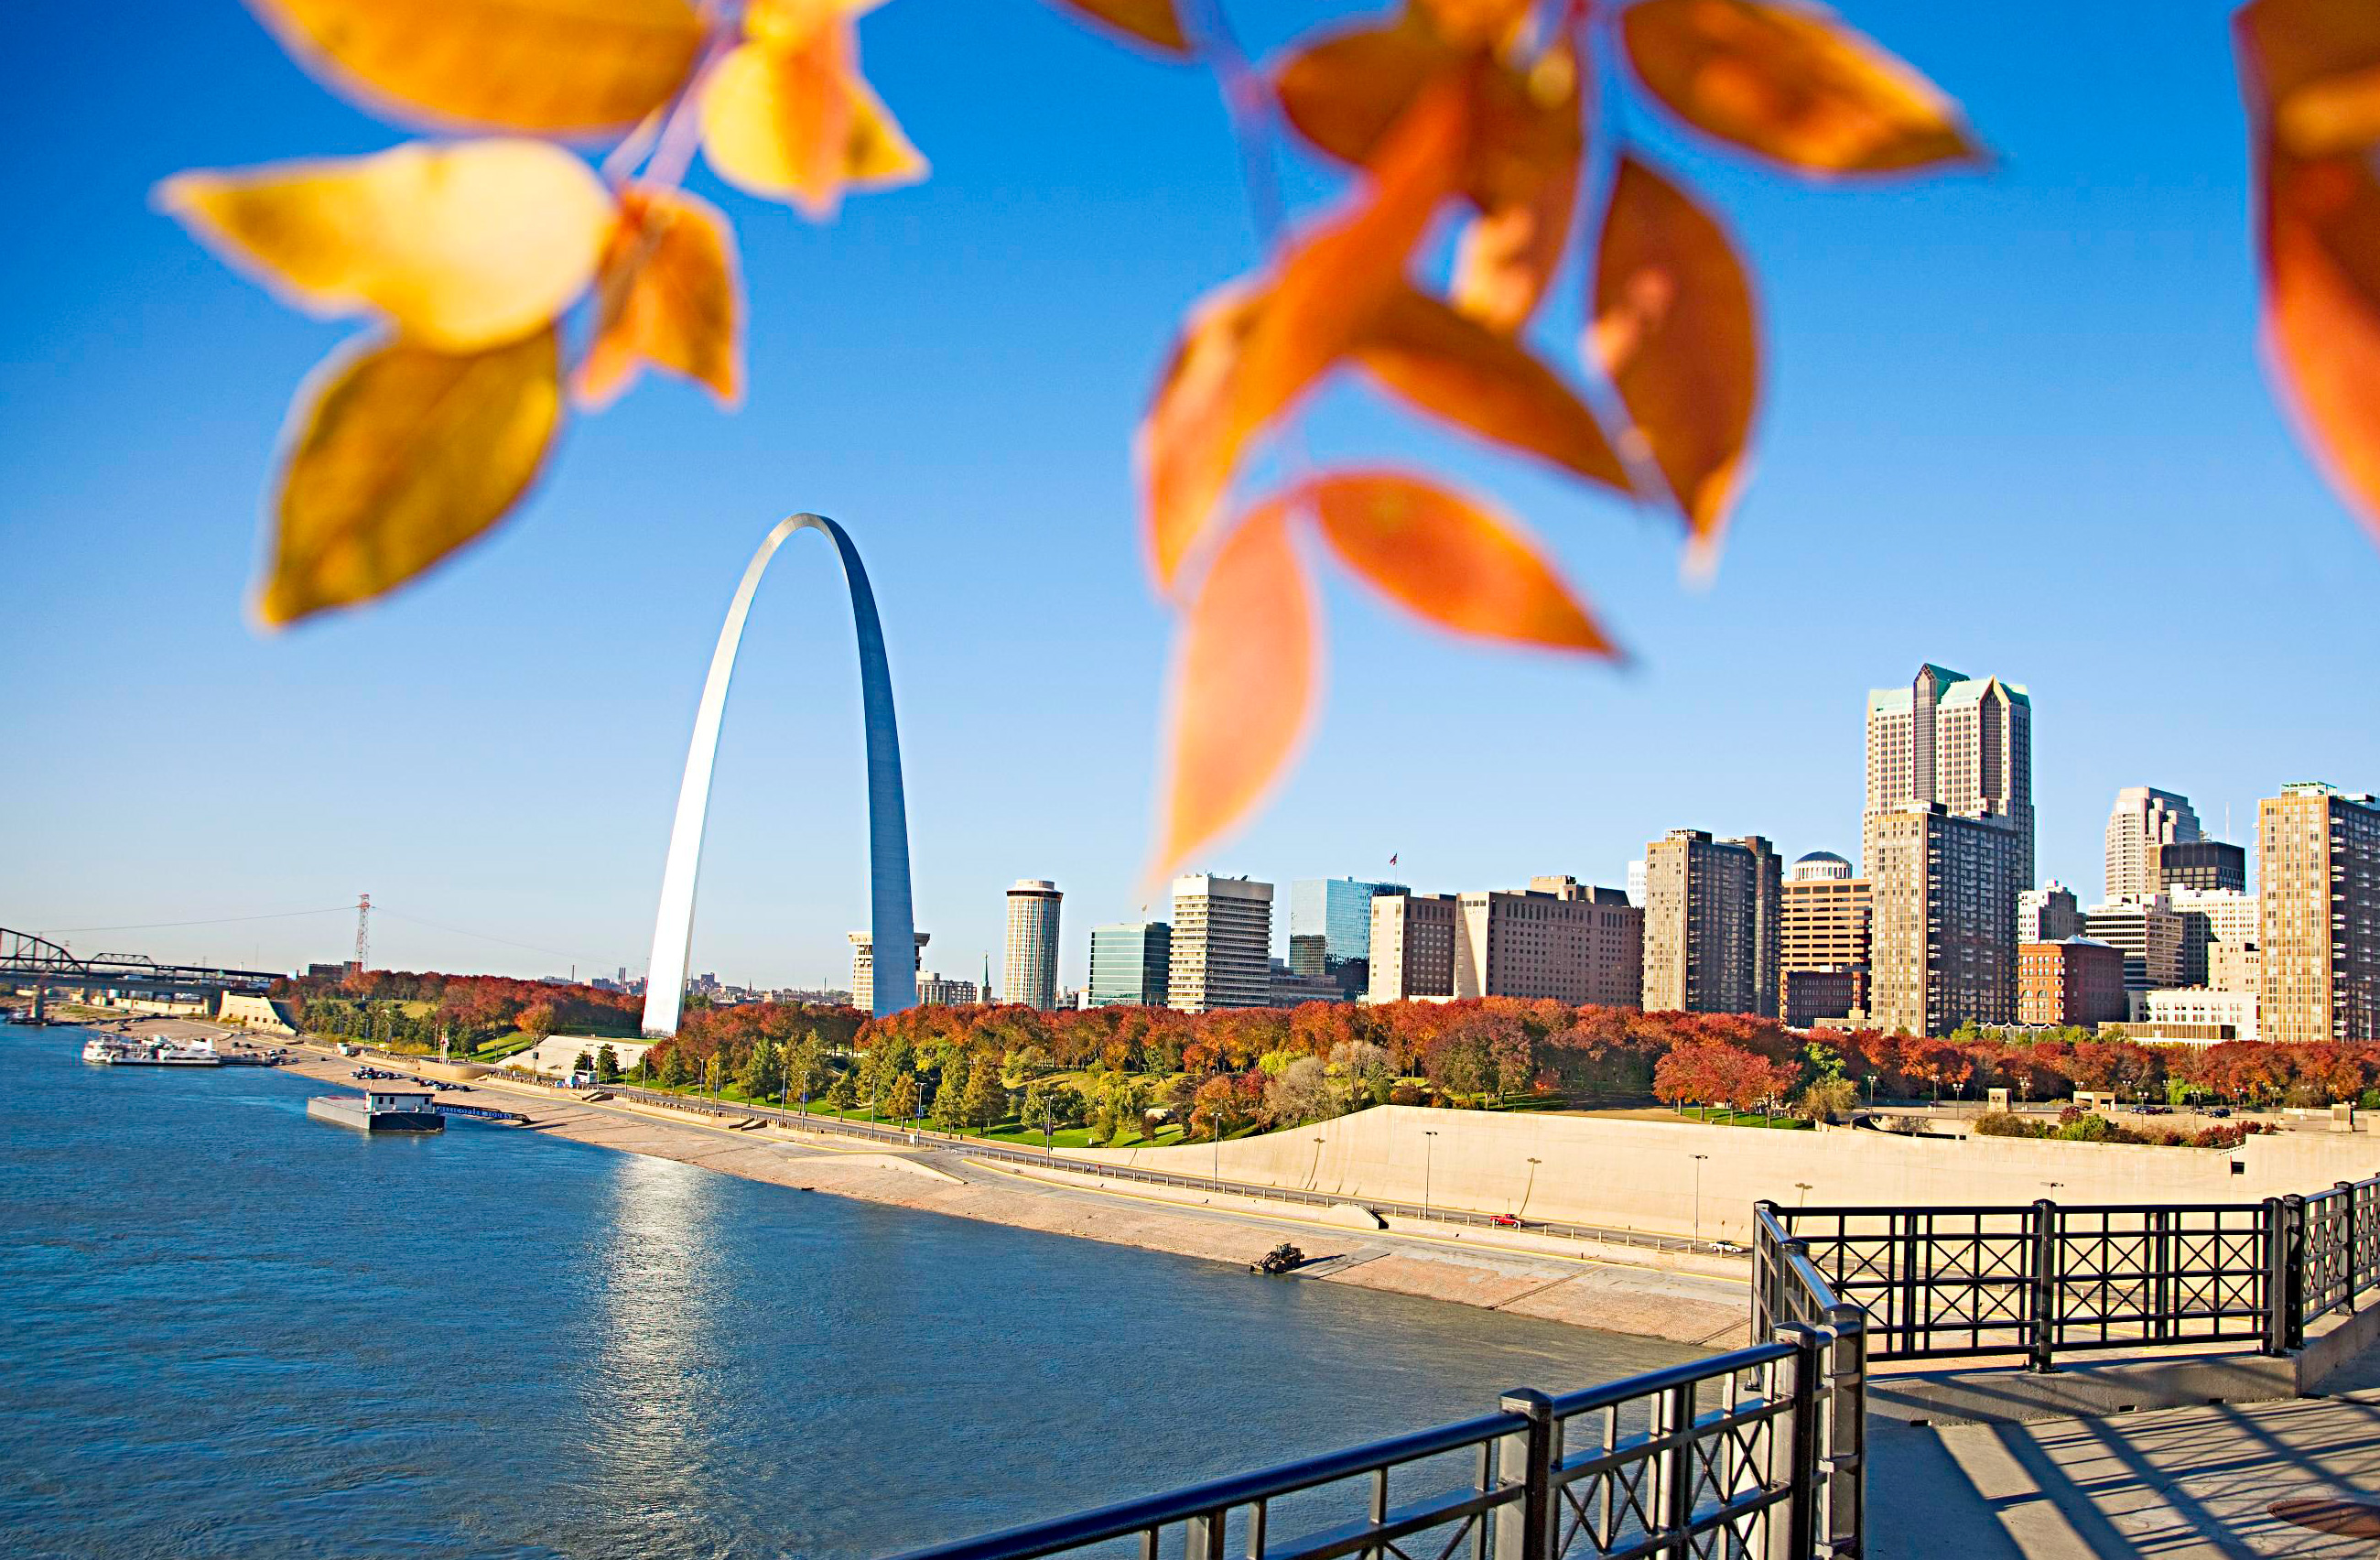 Lines at the Gateway Arch are shorter in fall.